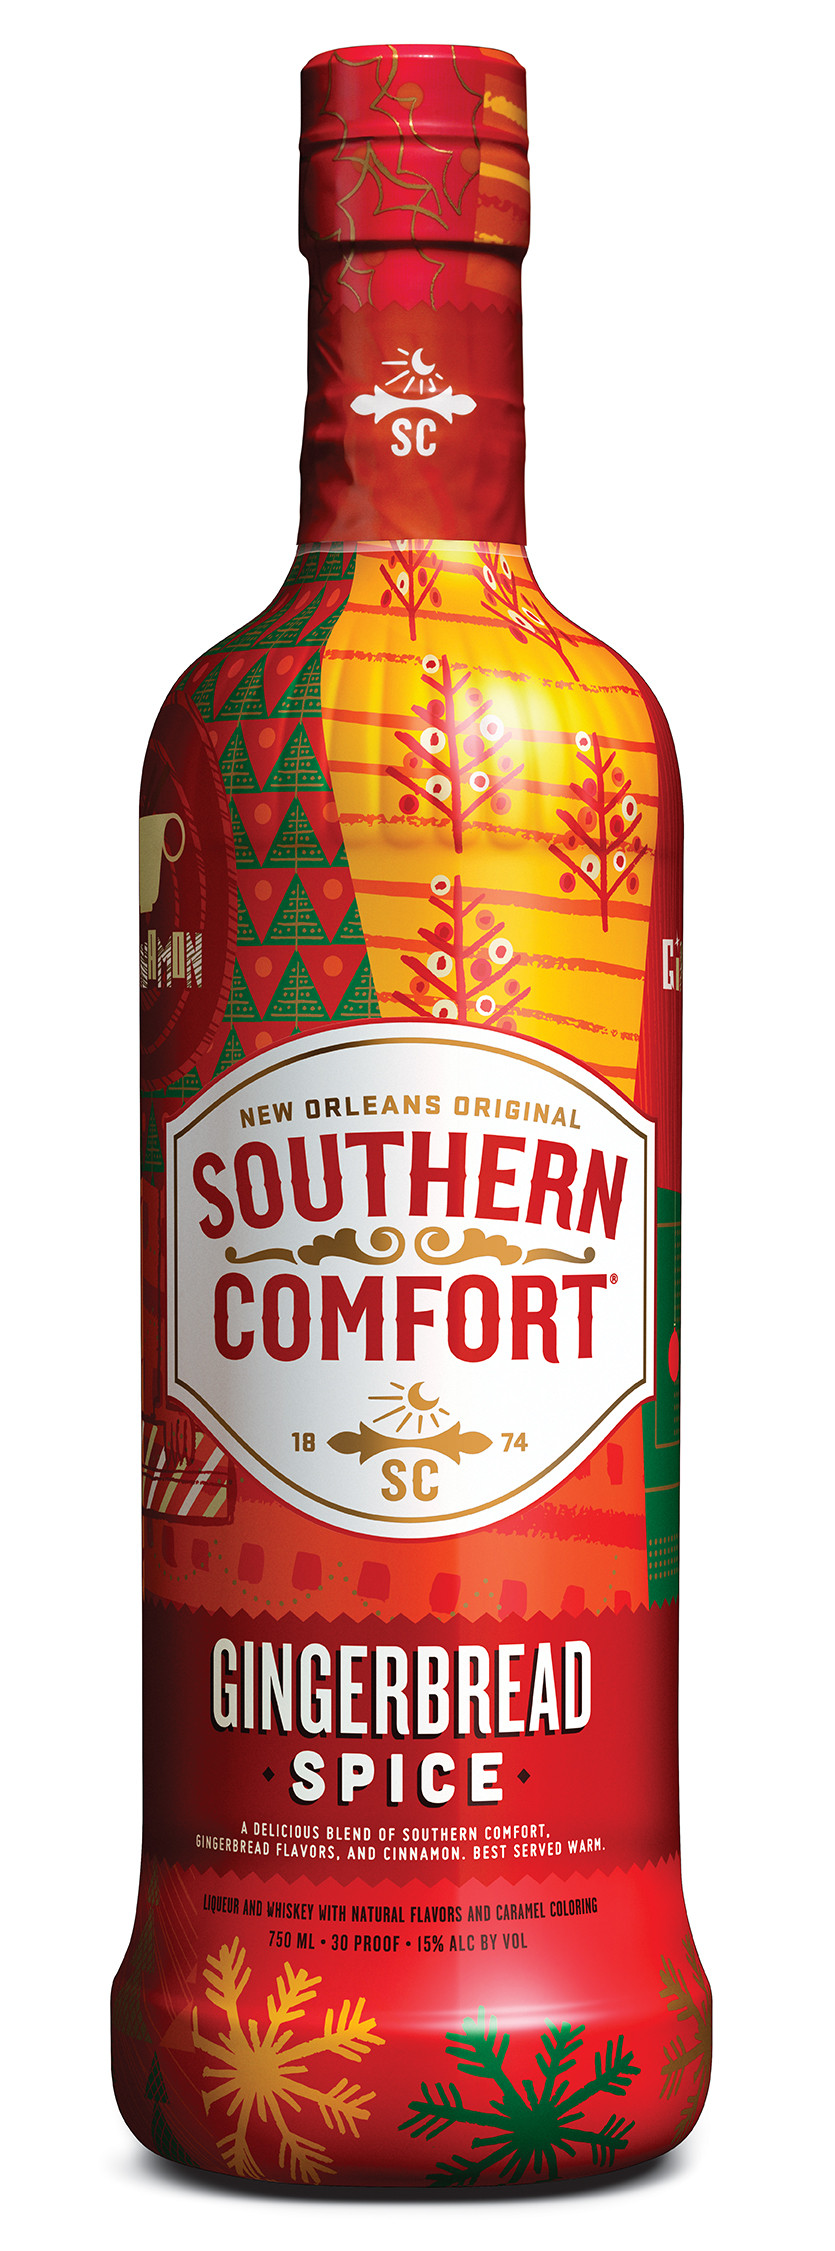 Drinks With Southern Comfort  Review Southern fort Gingerbread Spice – Drinkhacker